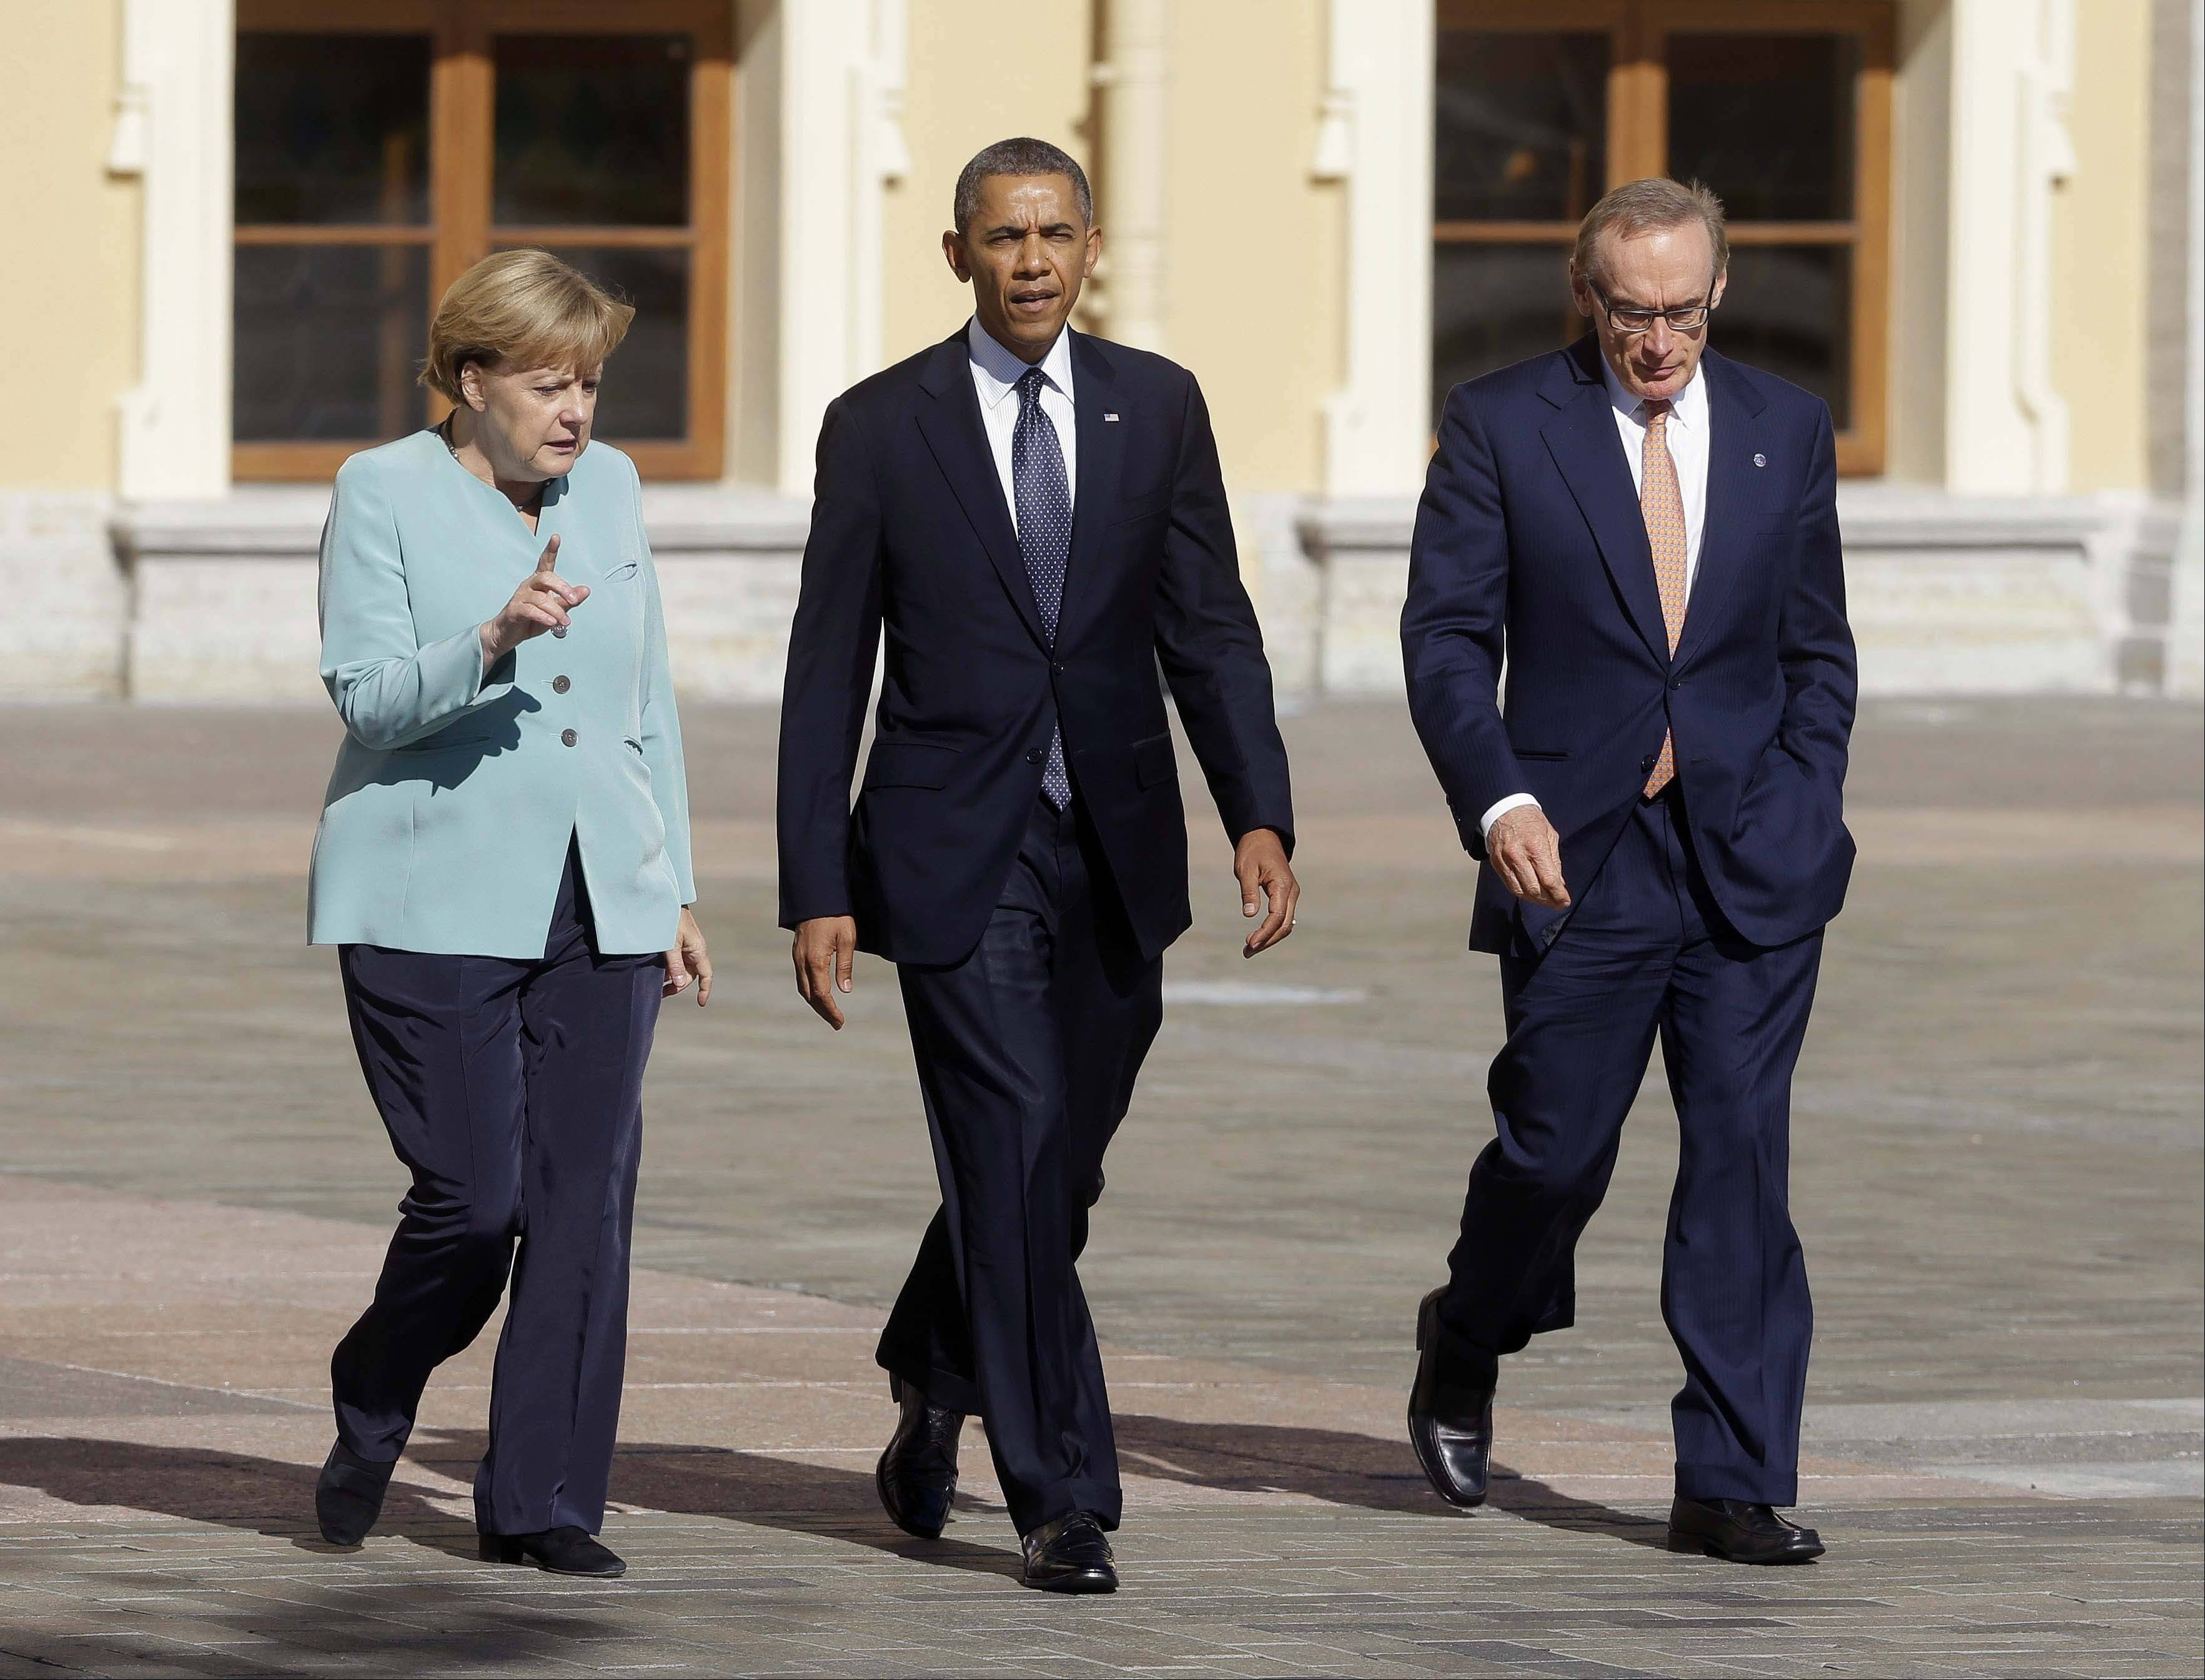 U.S. President Barack Obama walks with Germany's Chancellor Angela Merkel, left, and Australian Foreign Minister Bob Carr prior to the group photo at the G-20 summit at the Konstantin Palace in St. Petersburg, Russia.